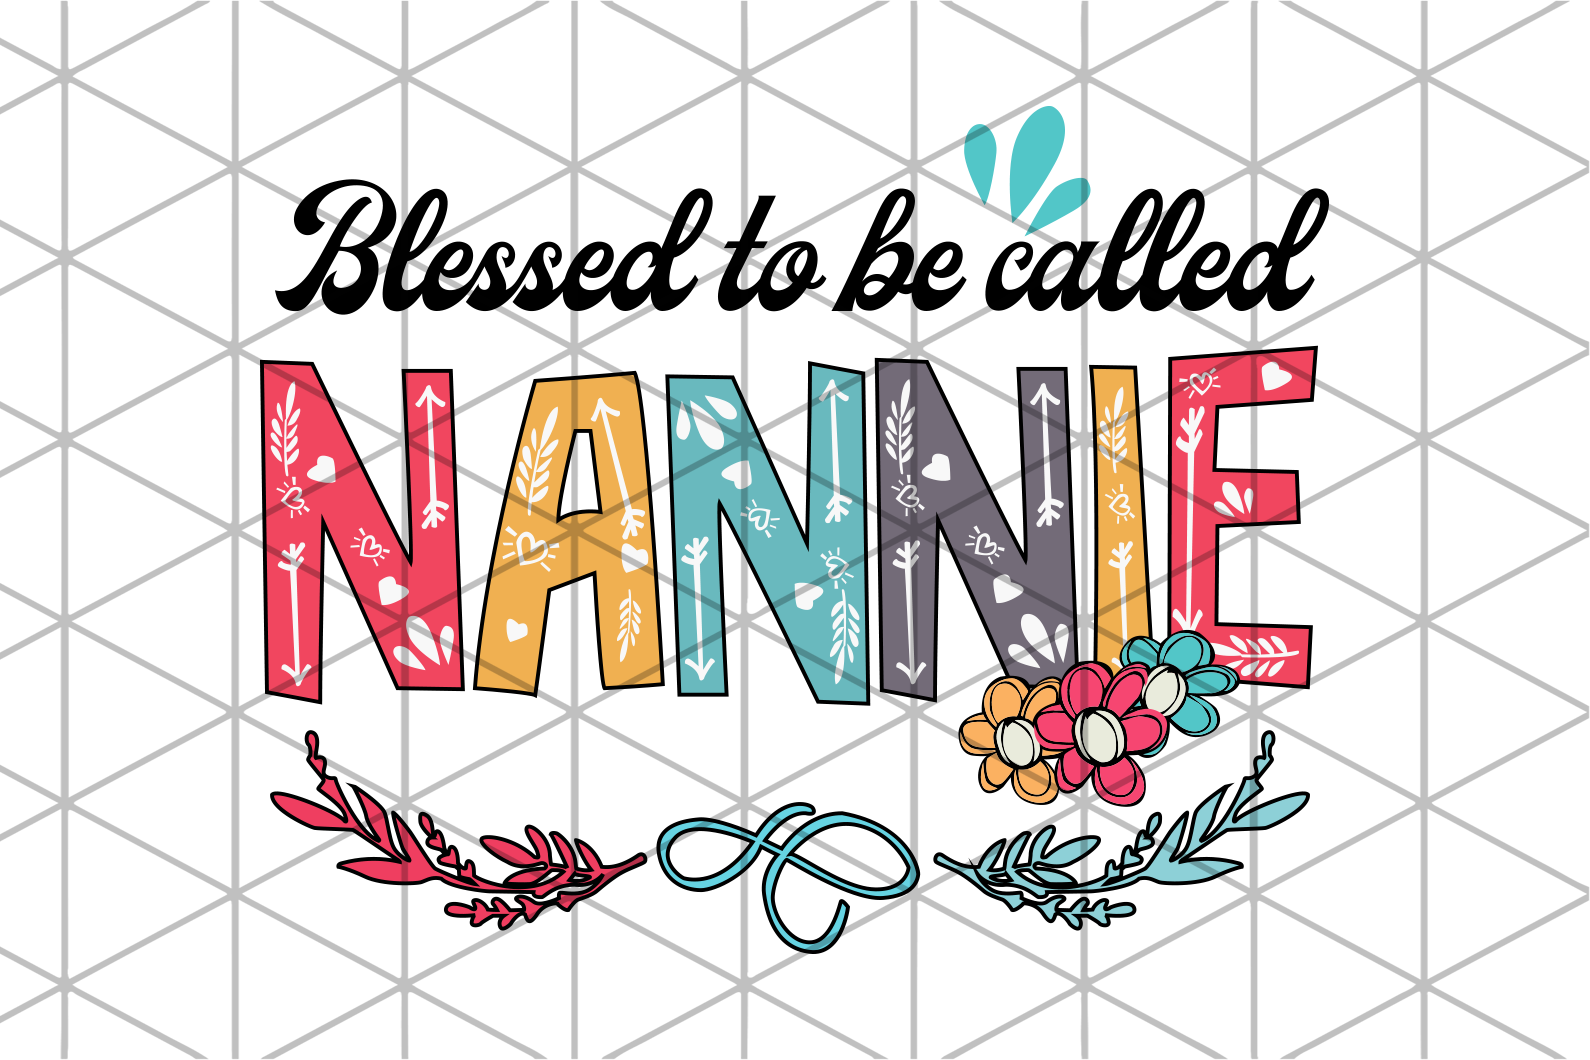 Blessed to be called nannie svg,granny svg,neena svg,mother's day svg,gigi svg,grandma svg,blessed gigi svg,mawmaw svg,gift for mom,gift for mother,svg cut files, svg clipart, silhouette svg, cricut svg files, decal and vinyl,